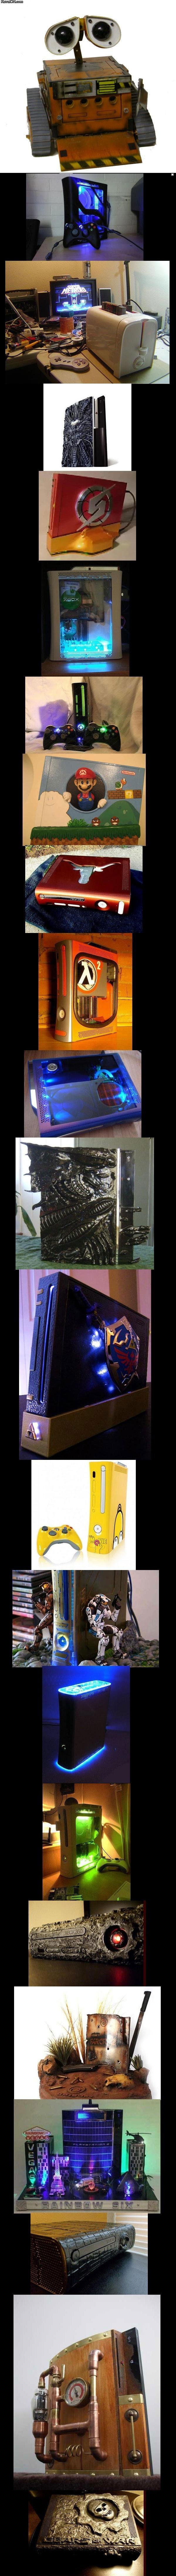 L'univers des Geeks - Page 7 Game_console_tuning